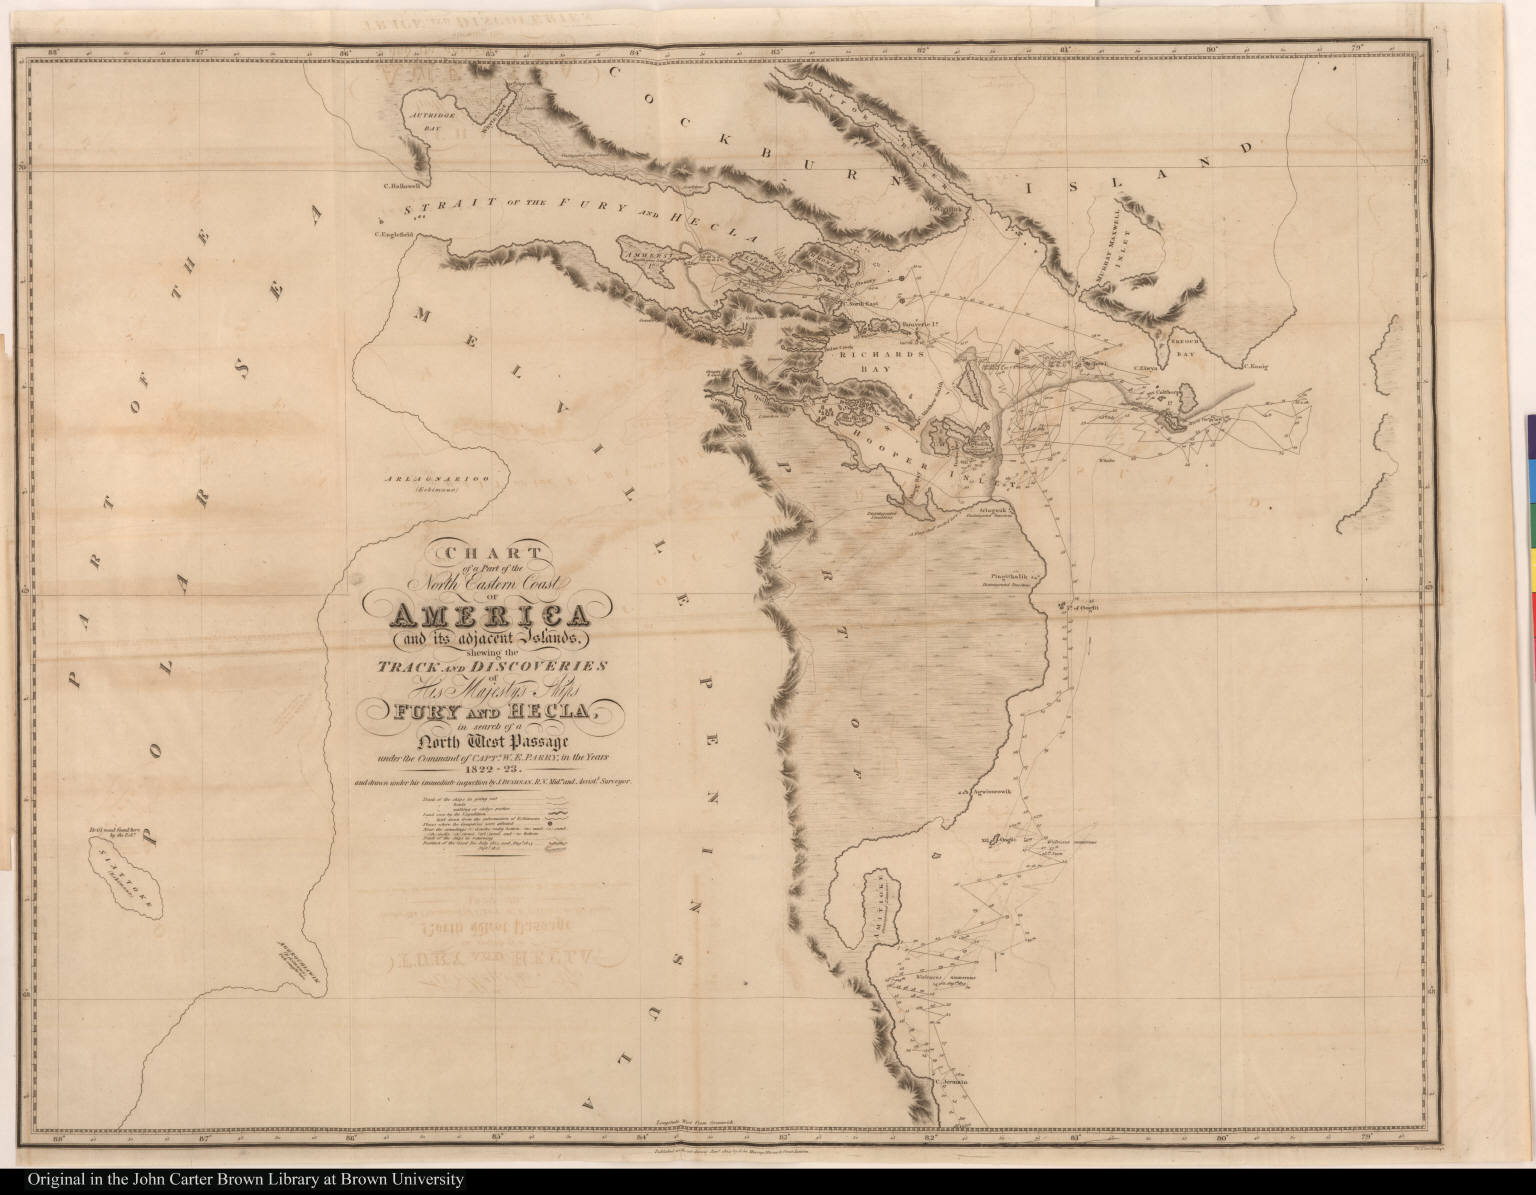 Chart of a Part of the North Eastern Coast of America and its adjacent Islands, shewing the Track and Discoveries of ... Fury and Hecla, in search of a North West Passage ... 1822-23.